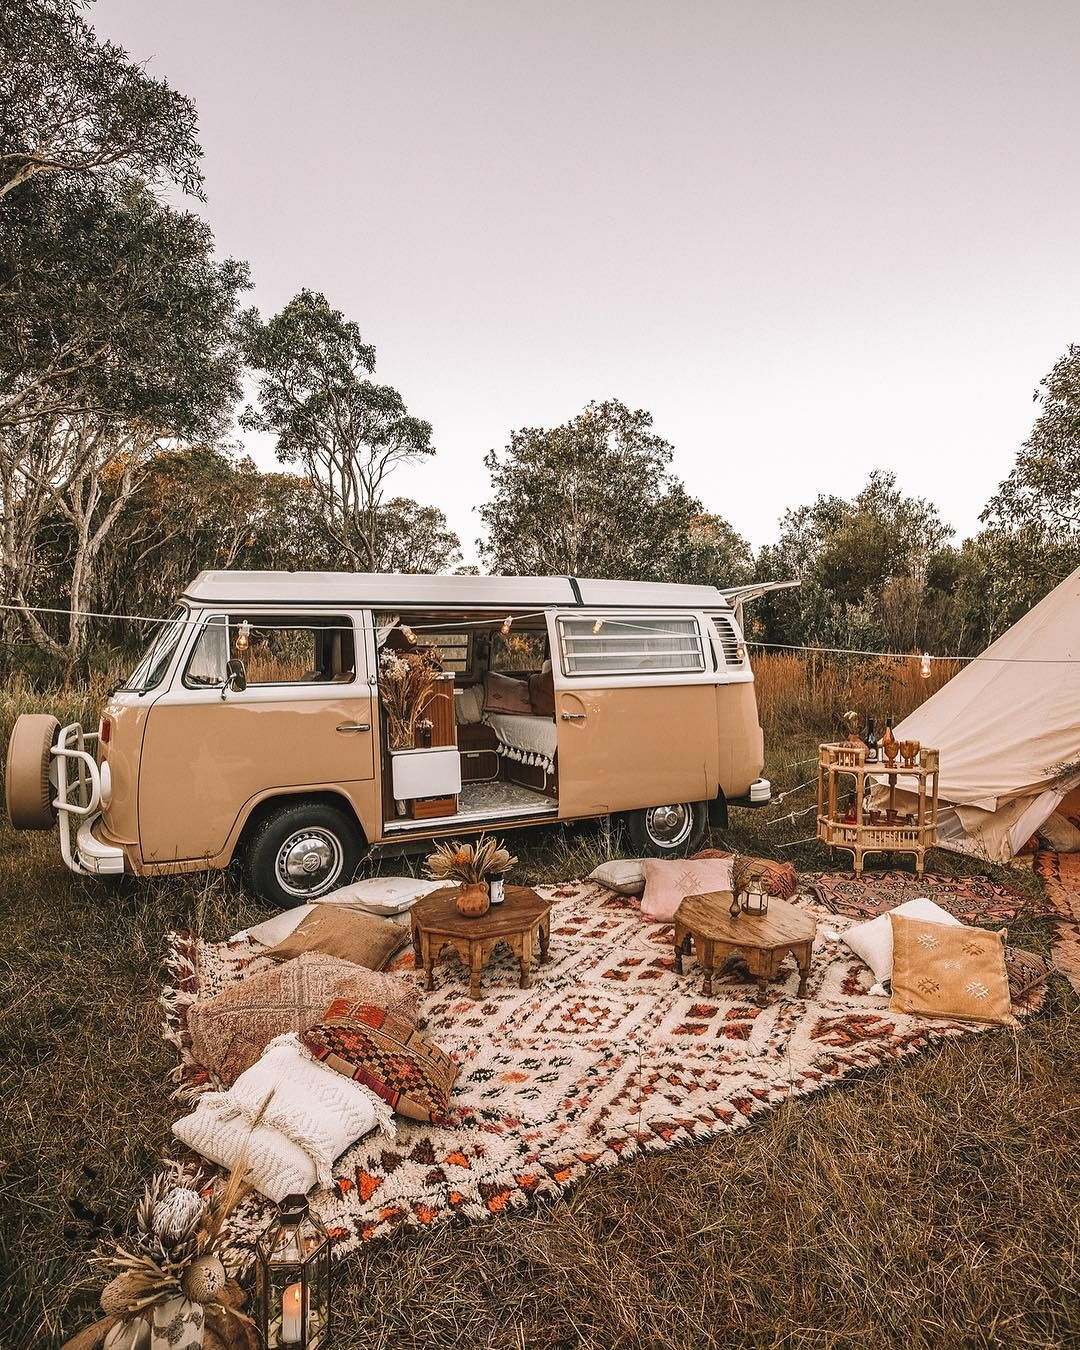 "S P E L L | spell_byronbay on Instagram: ""Nothing like a night under the stars ✨ full kombi setup post we did with @elisecook on the blog now"